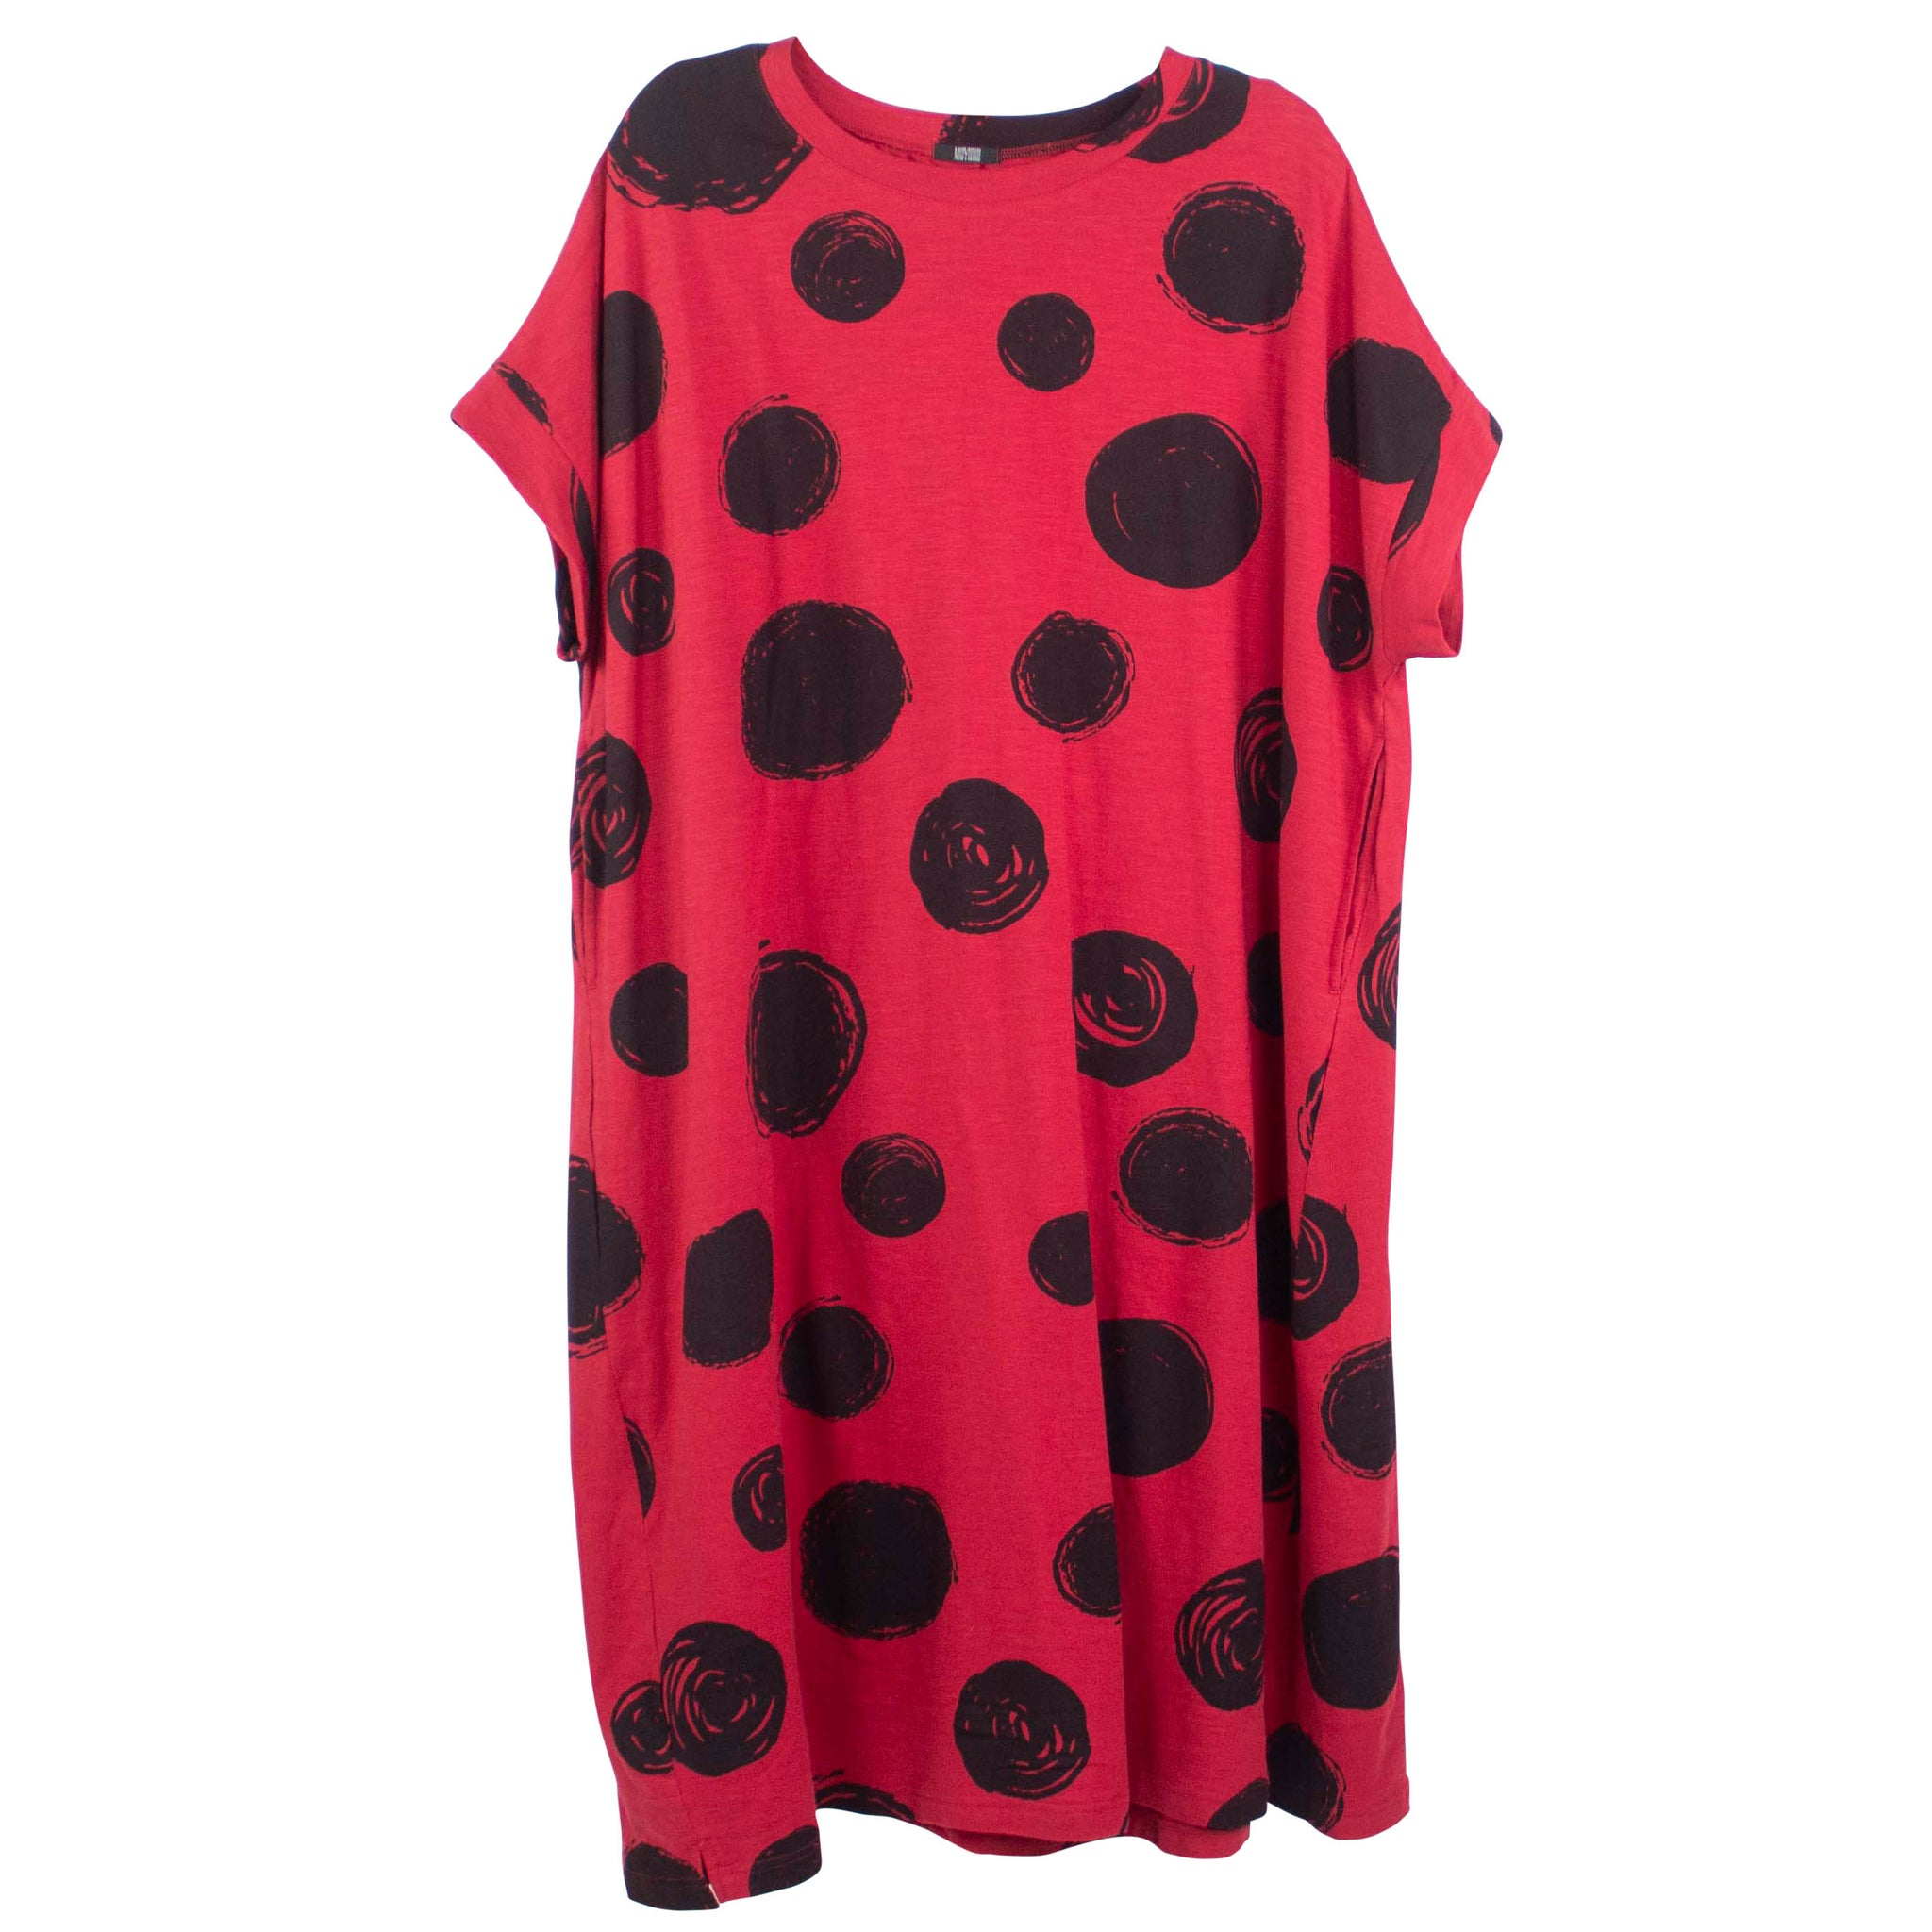 Moyuru Red and Black Print Dress